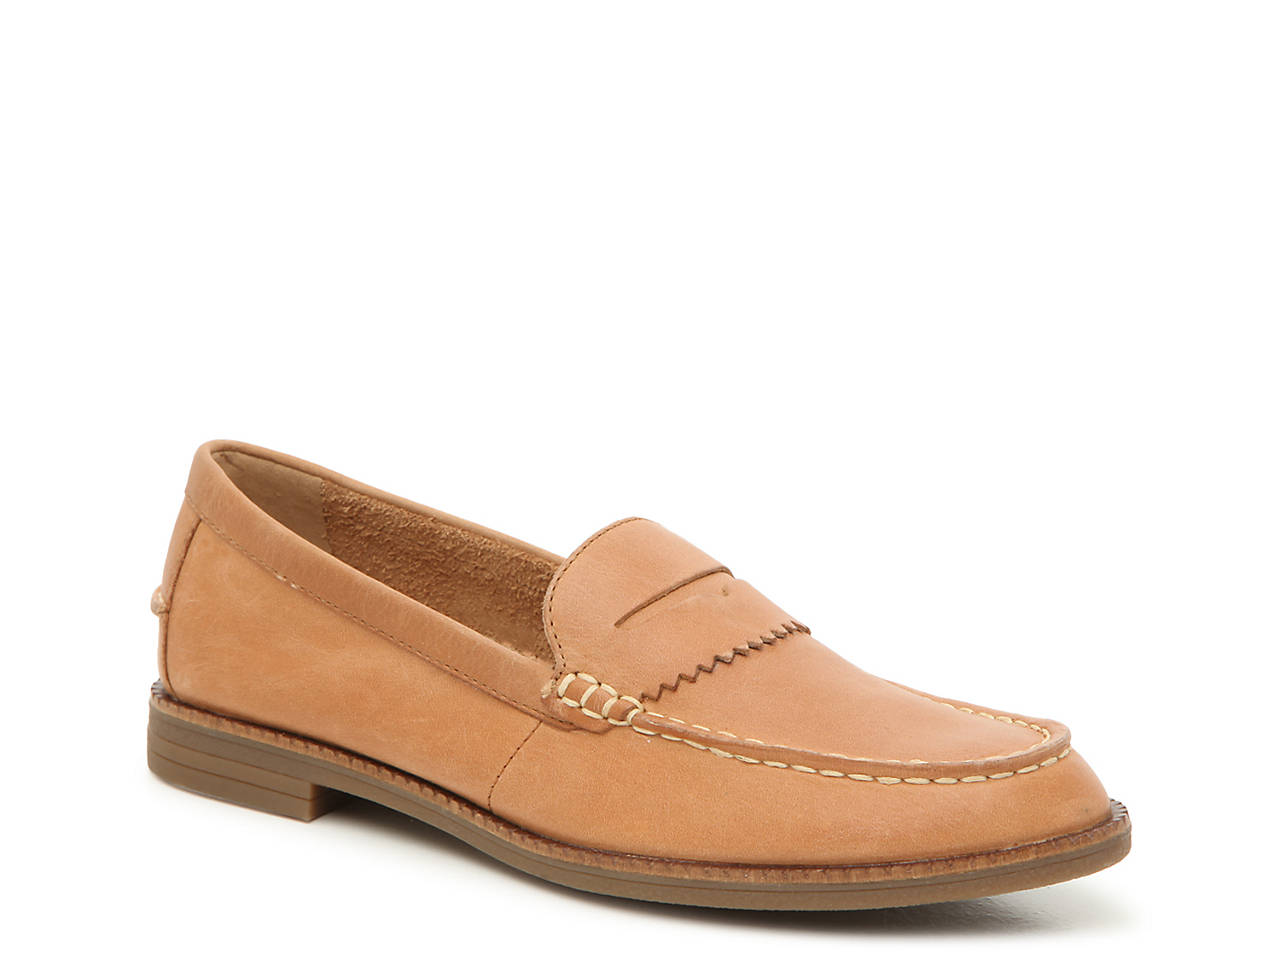 aeeb9ca212a7 Sperry Top-Sider Waypoint Penny Loafer Women s Shoes